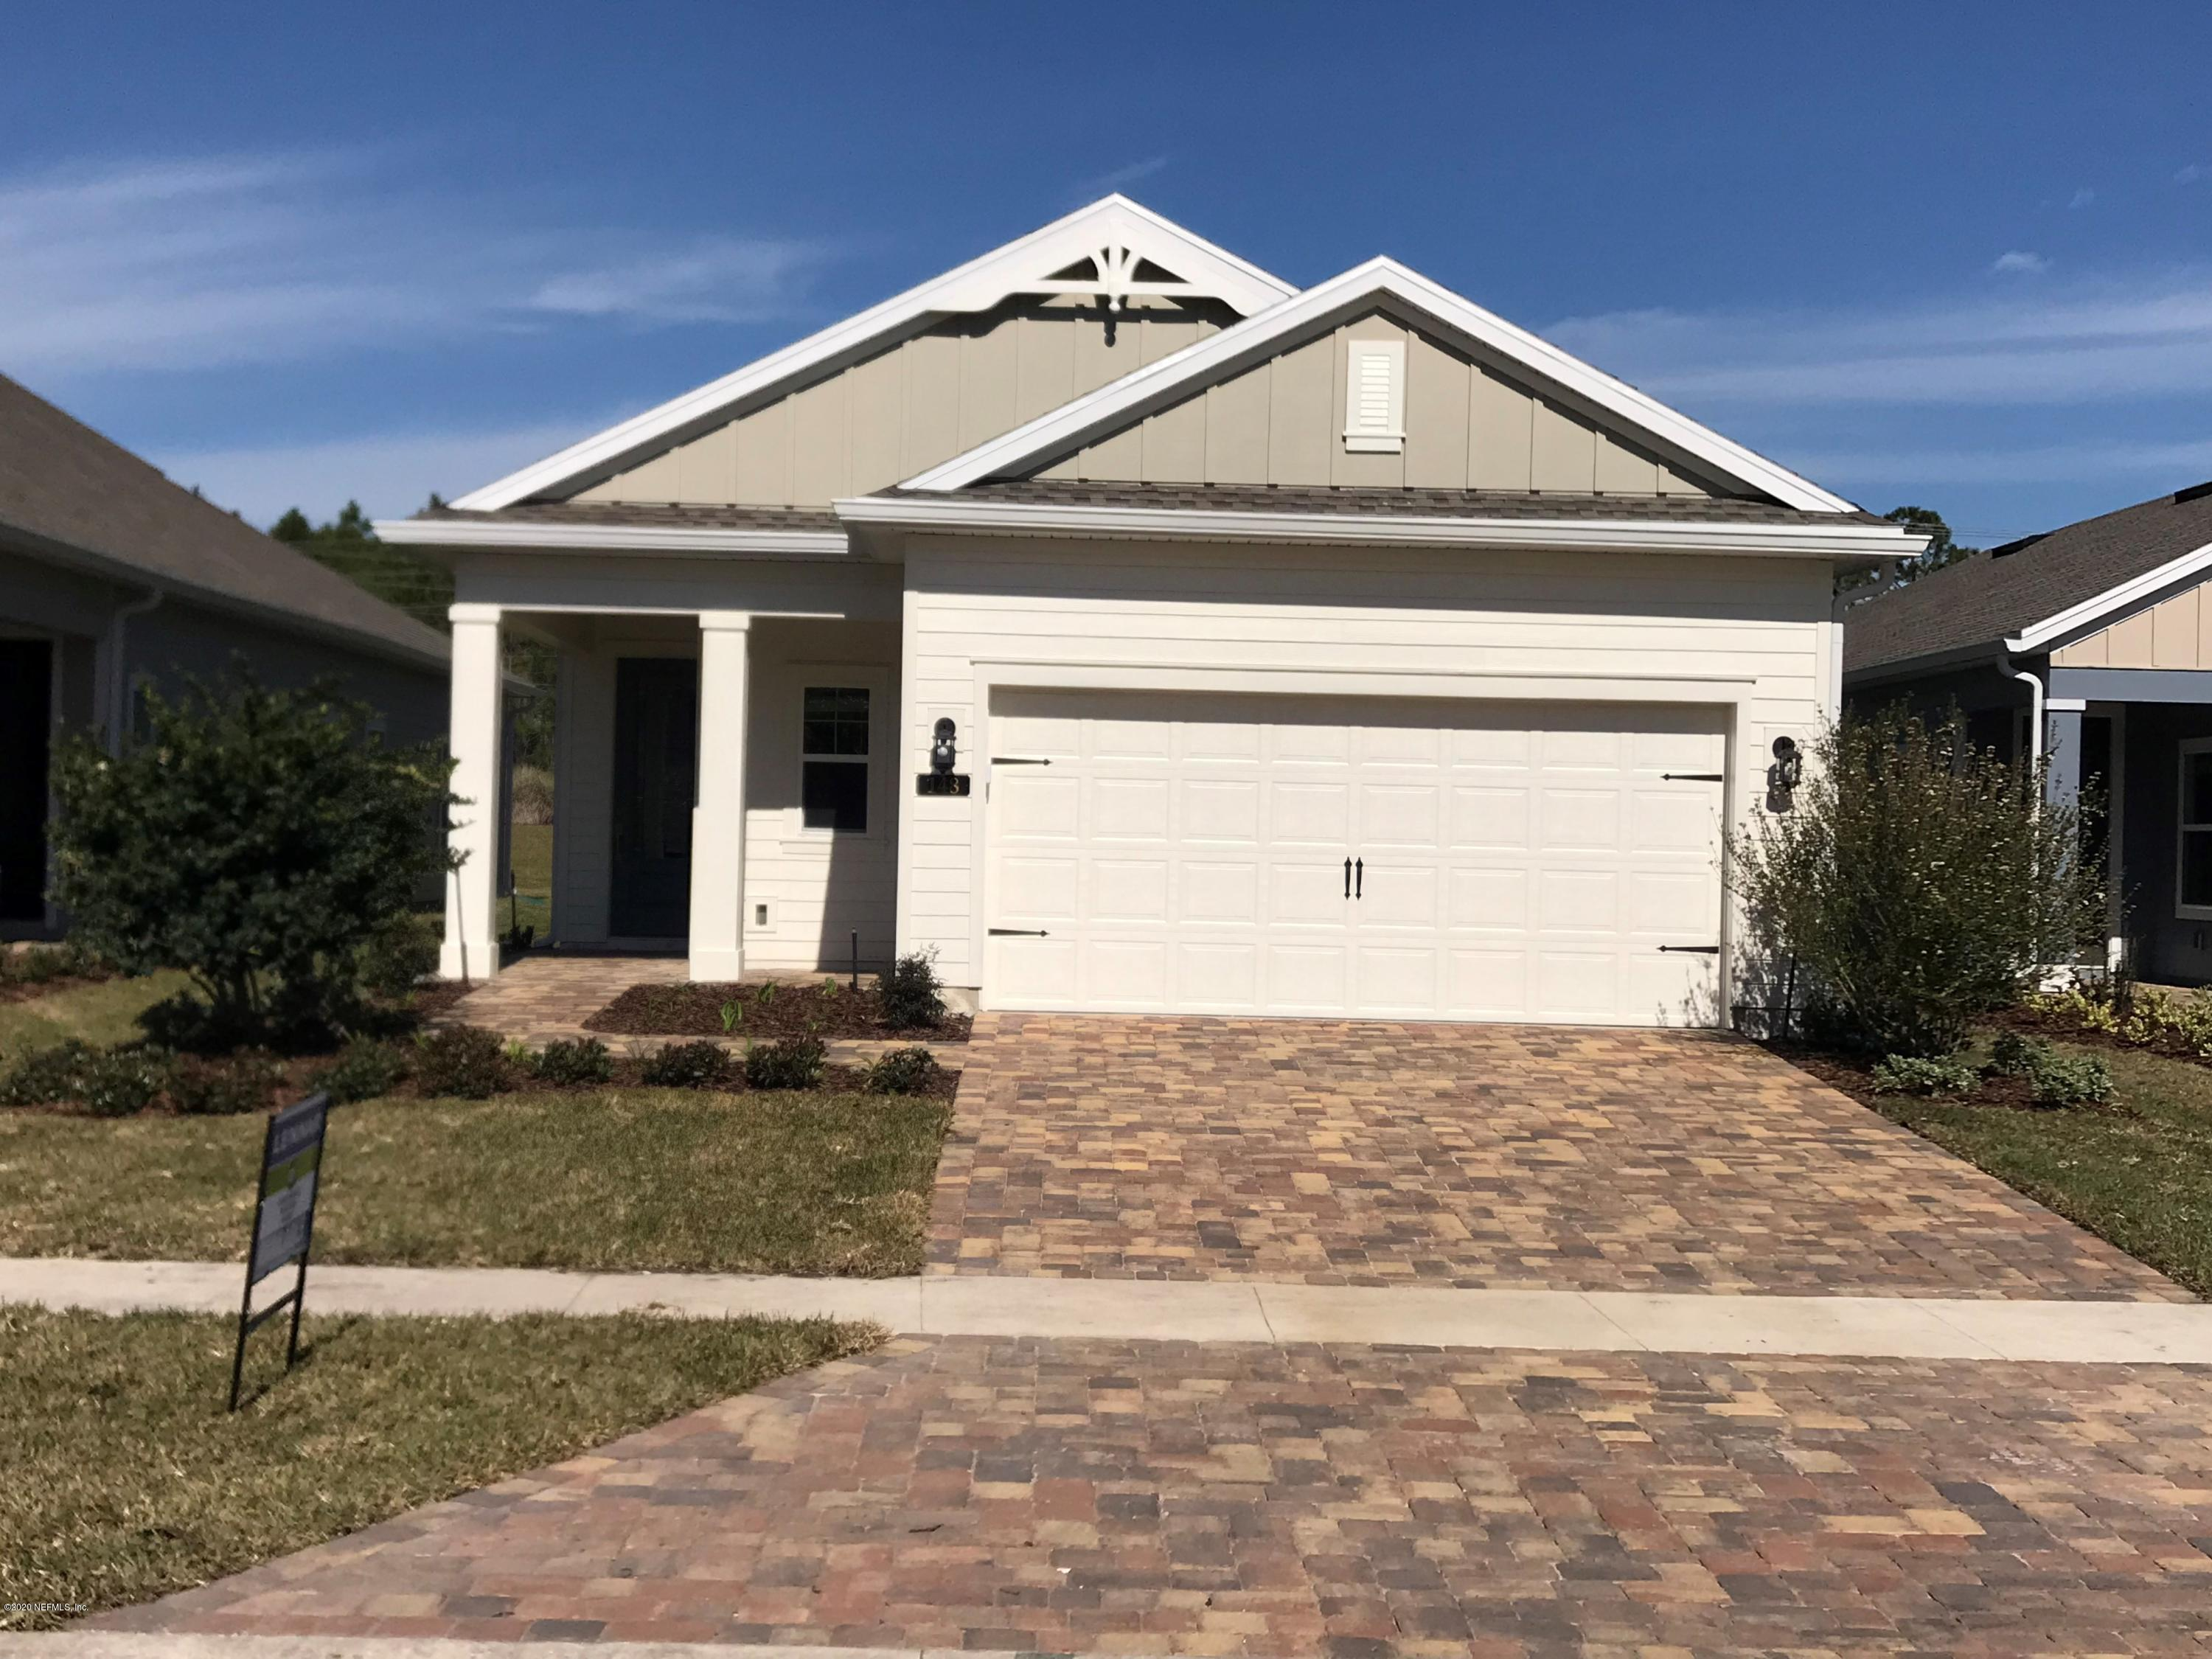 2146 MAJOR OAK, JACKSONVILLE, FLORIDA 32218, 3 Bedrooms Bedrooms, ,2 BathroomsBathrooms,Residential,For sale,MAJOR OAK,1081166